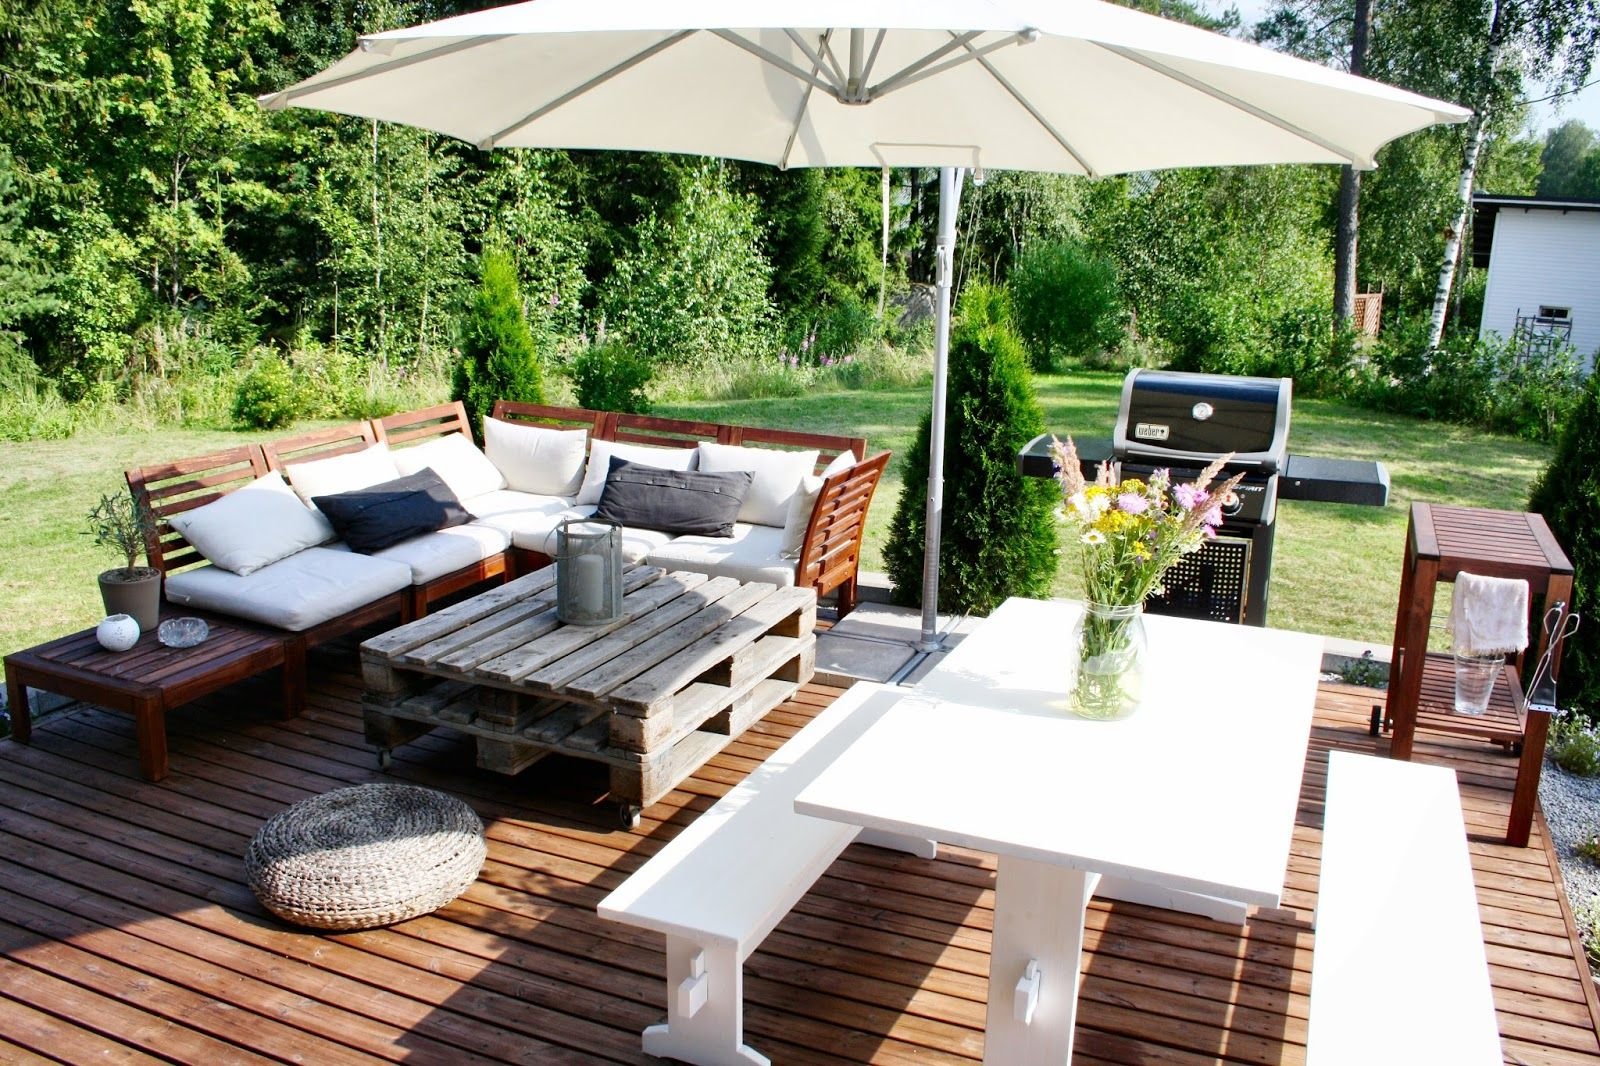 outdoor terrace patio garden ikea pplar. Black Bedroom Furniture Sets. Home Design Ideas